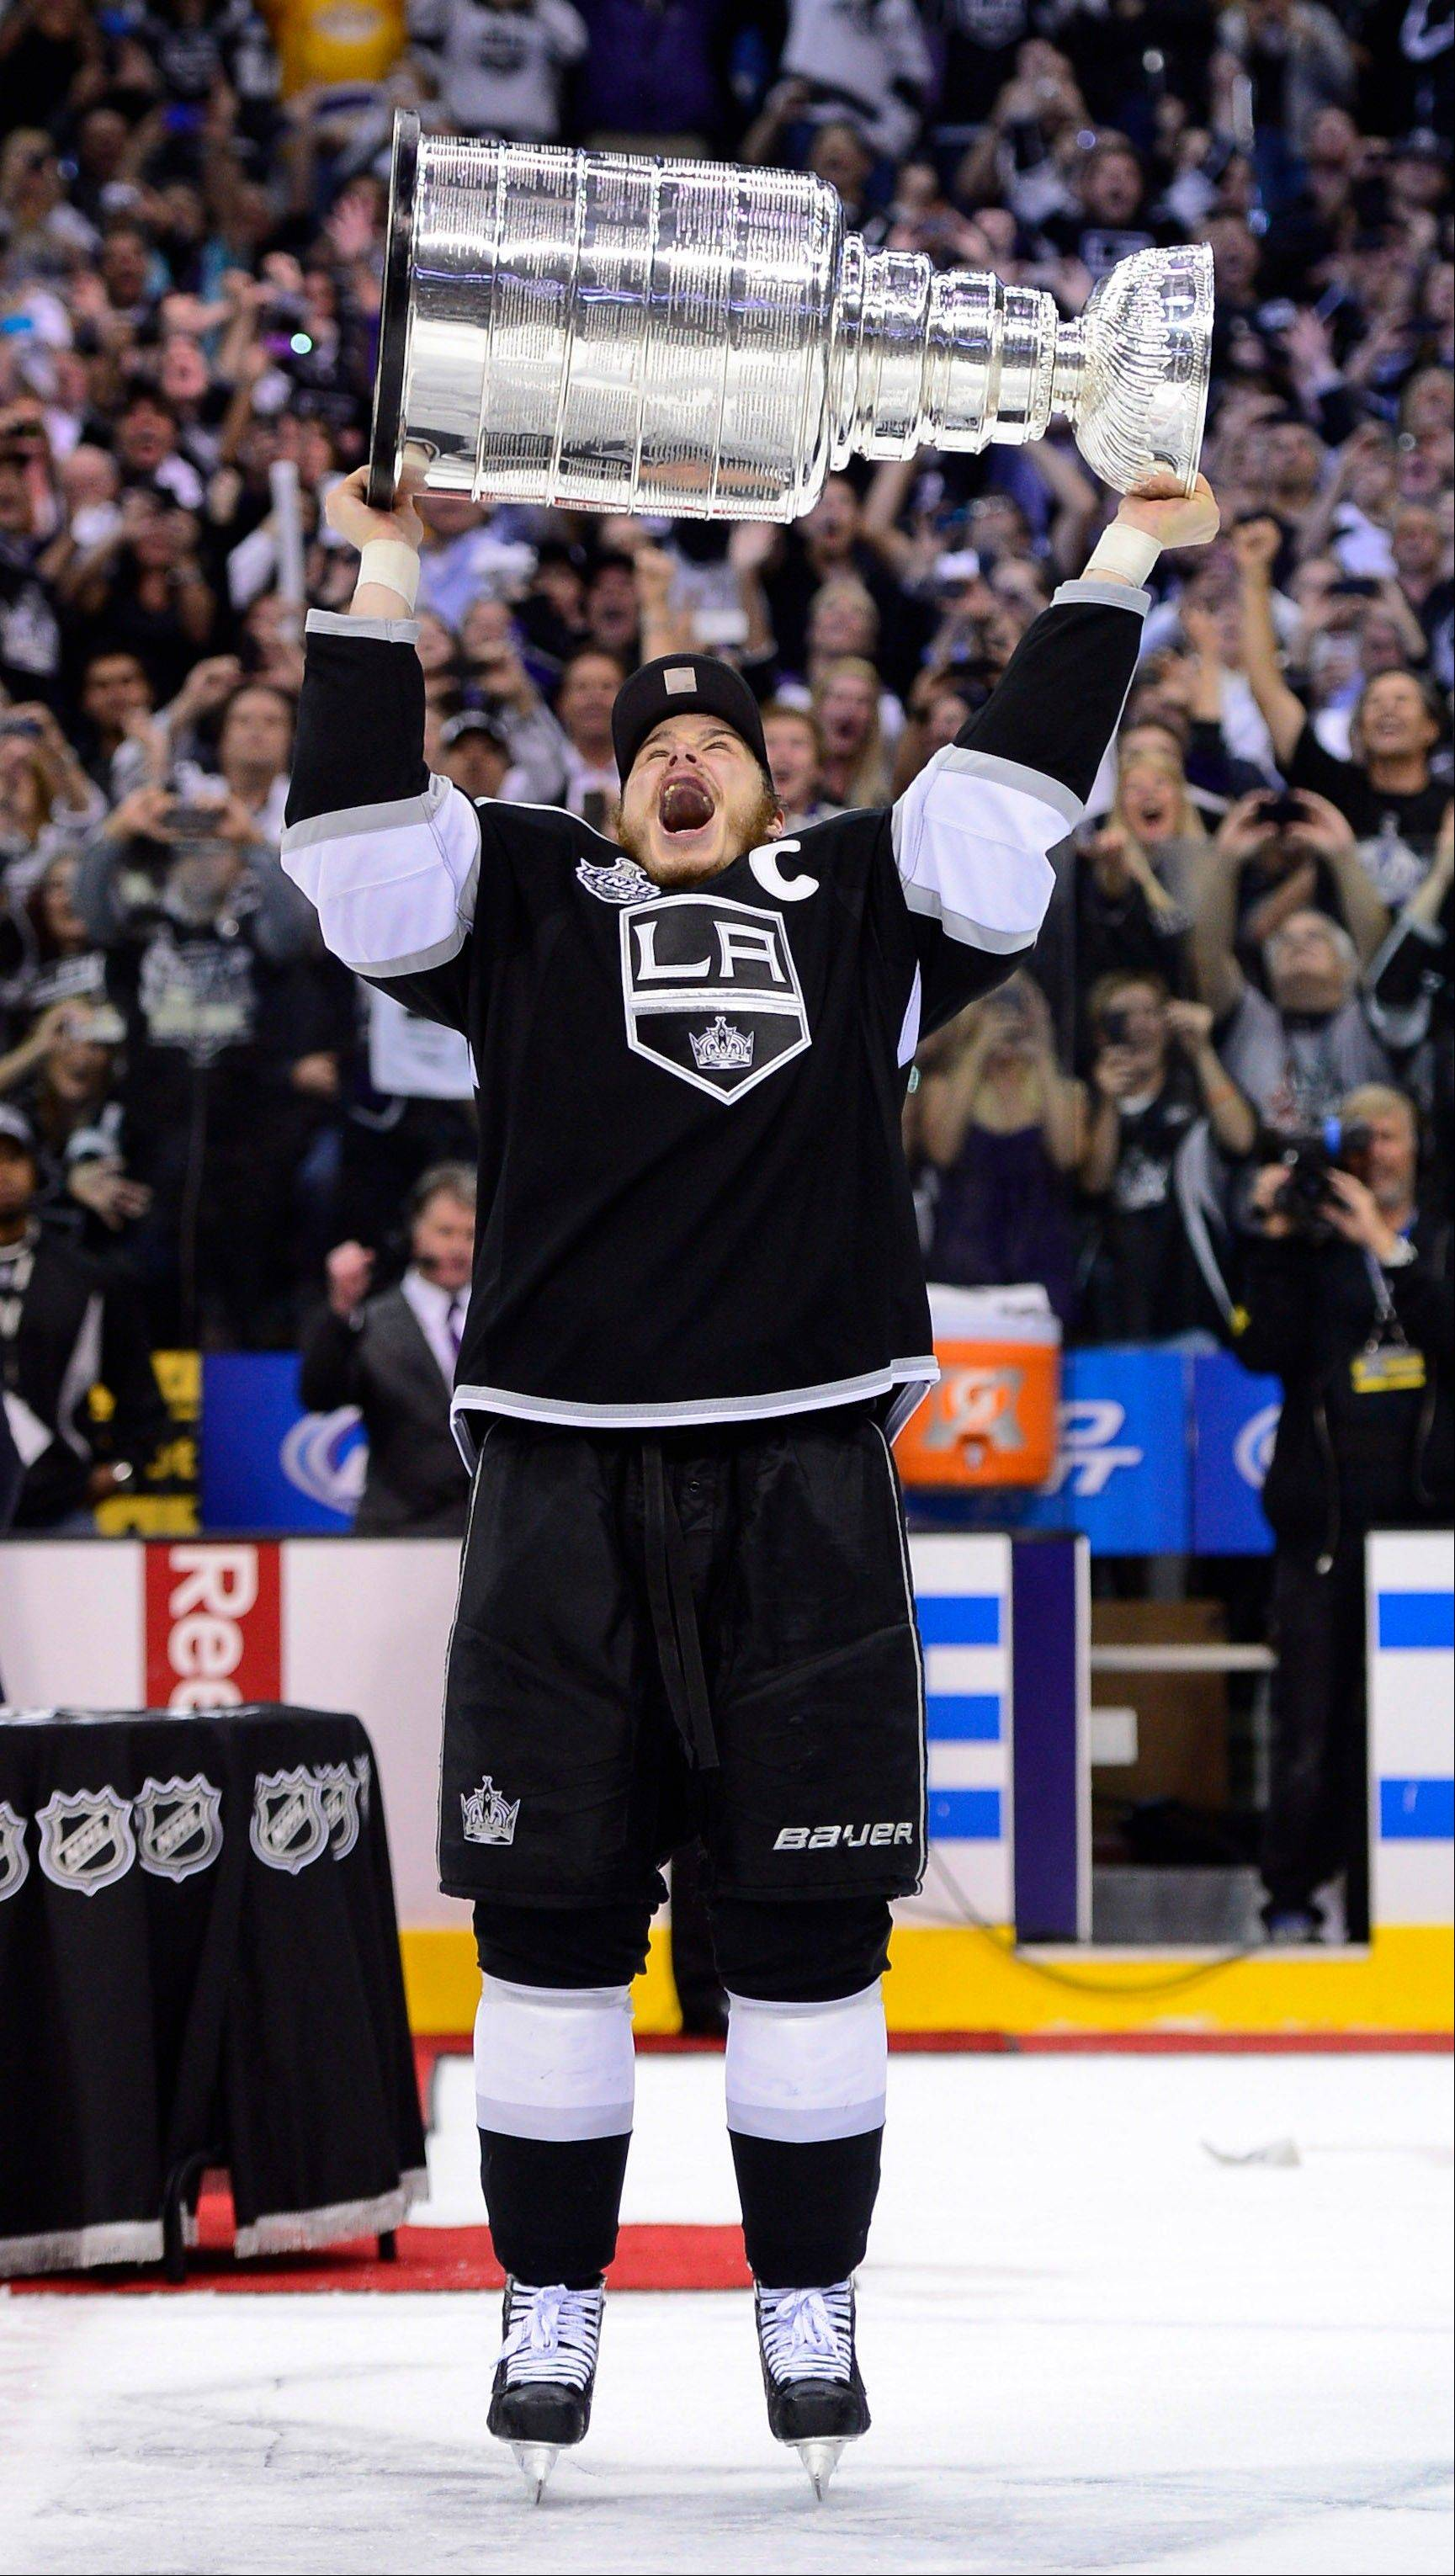 Los Angeles Kings captain Dustin Brown hoists the Stanley Cup Monday after the Kings beat the New Jersey Devils 6-1 during Game 6 of the Stanley Cup Finals.